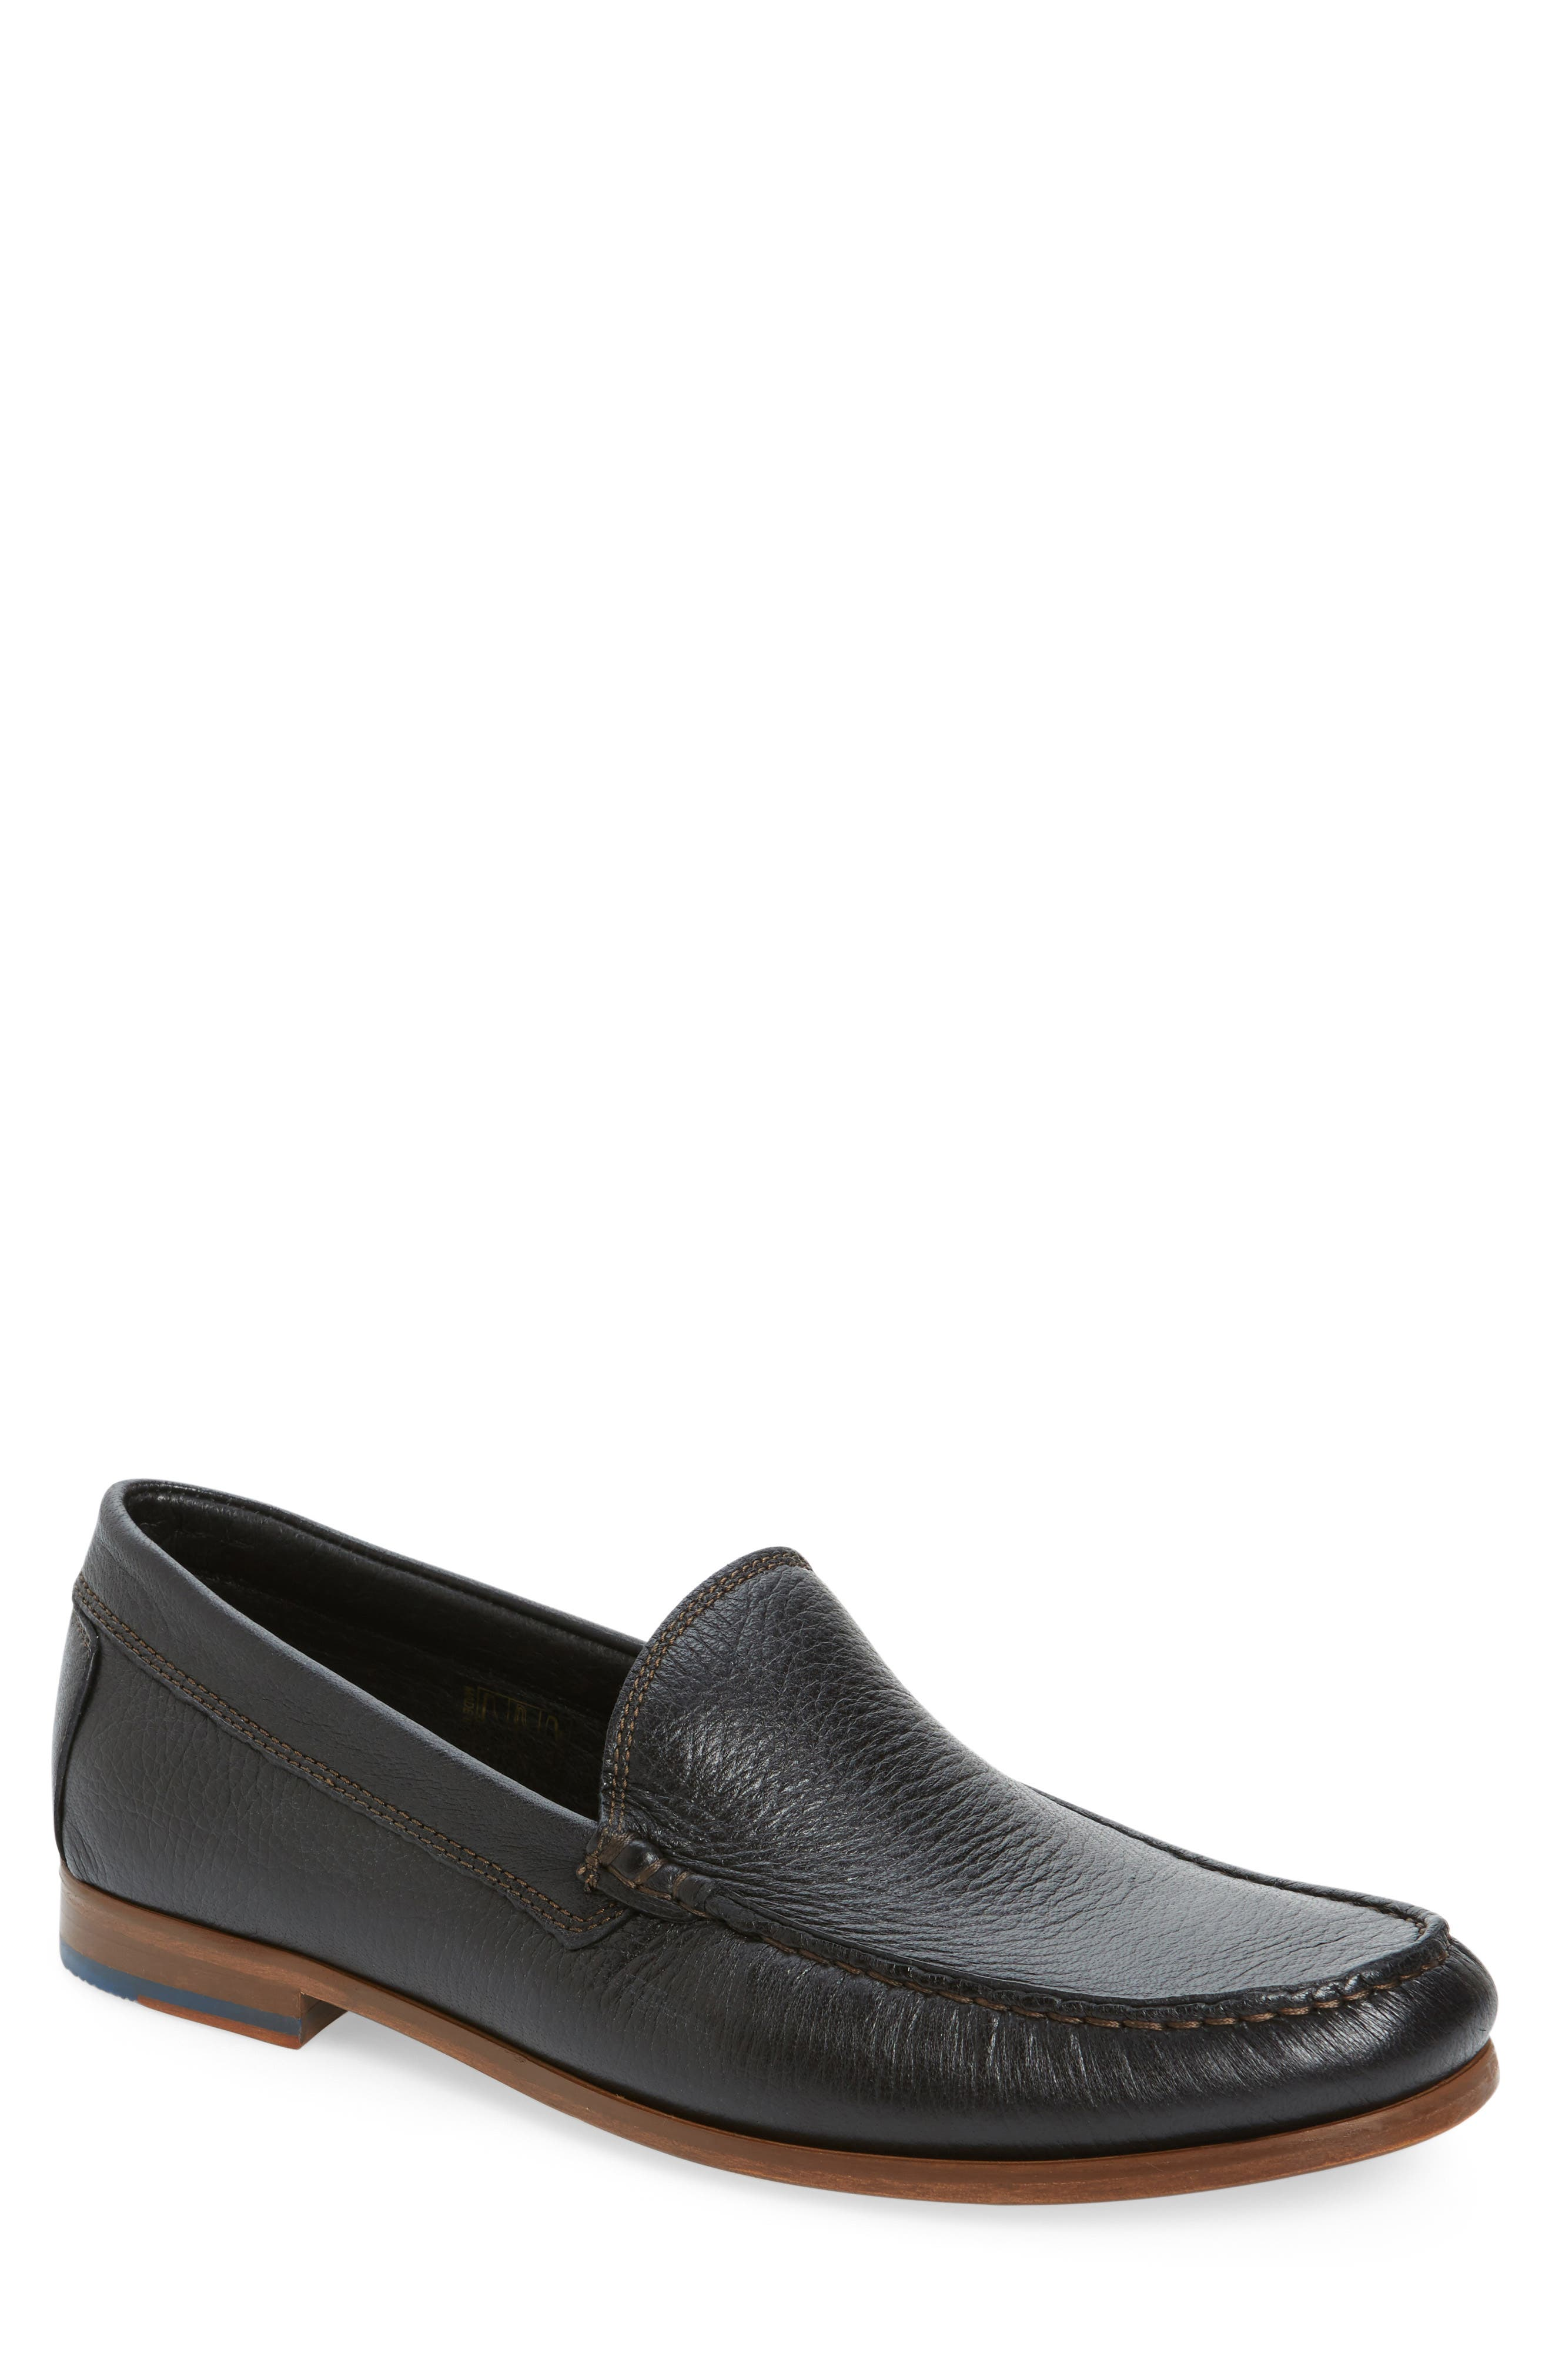 Donald J Pliner 'Nate' Loafer,                             Main thumbnail 1, color,